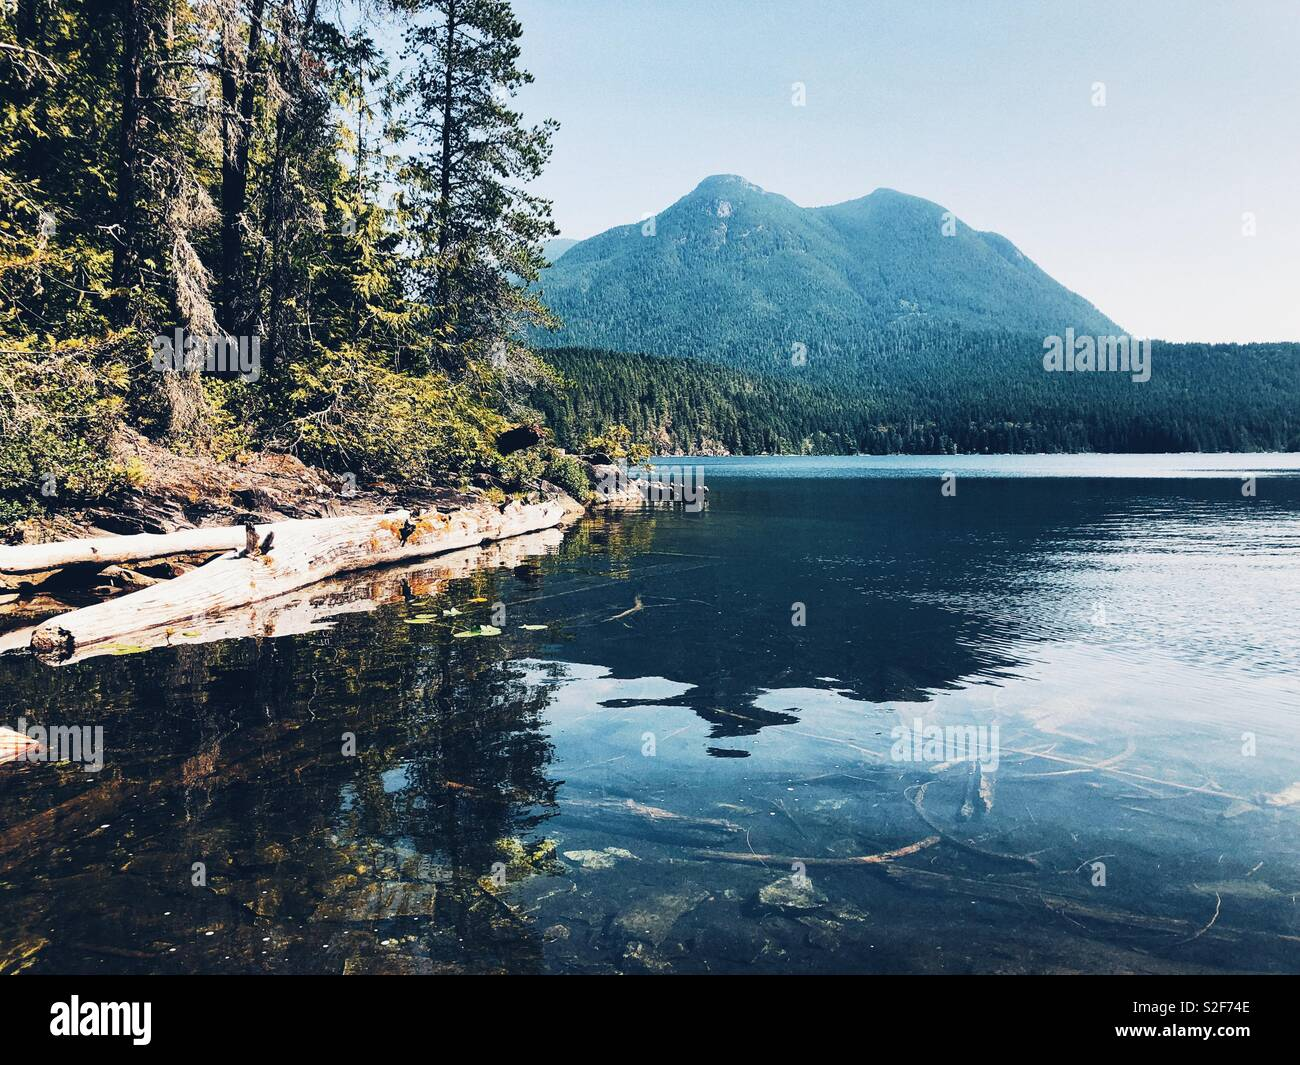 Clear fresh water of Unwin Lake in Desolation Sound Marine Provincial Park, BC, Canada - Stock Image